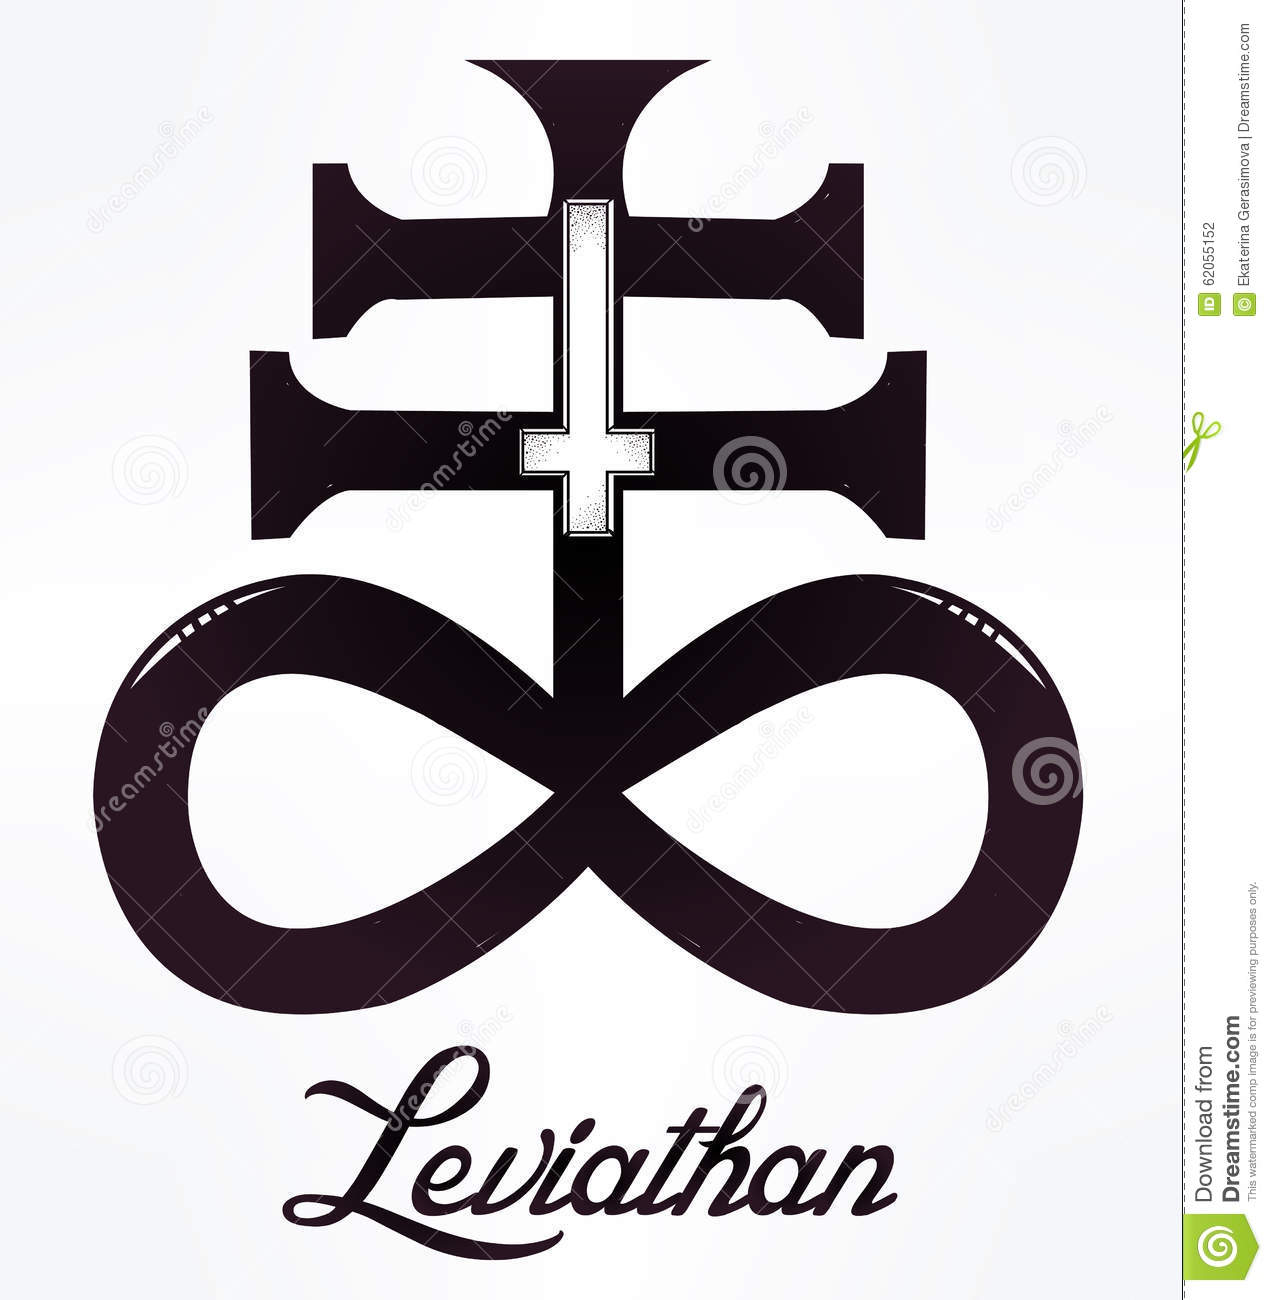 Leviathan Stock Images, Royalty-Free Images & Vectors ...